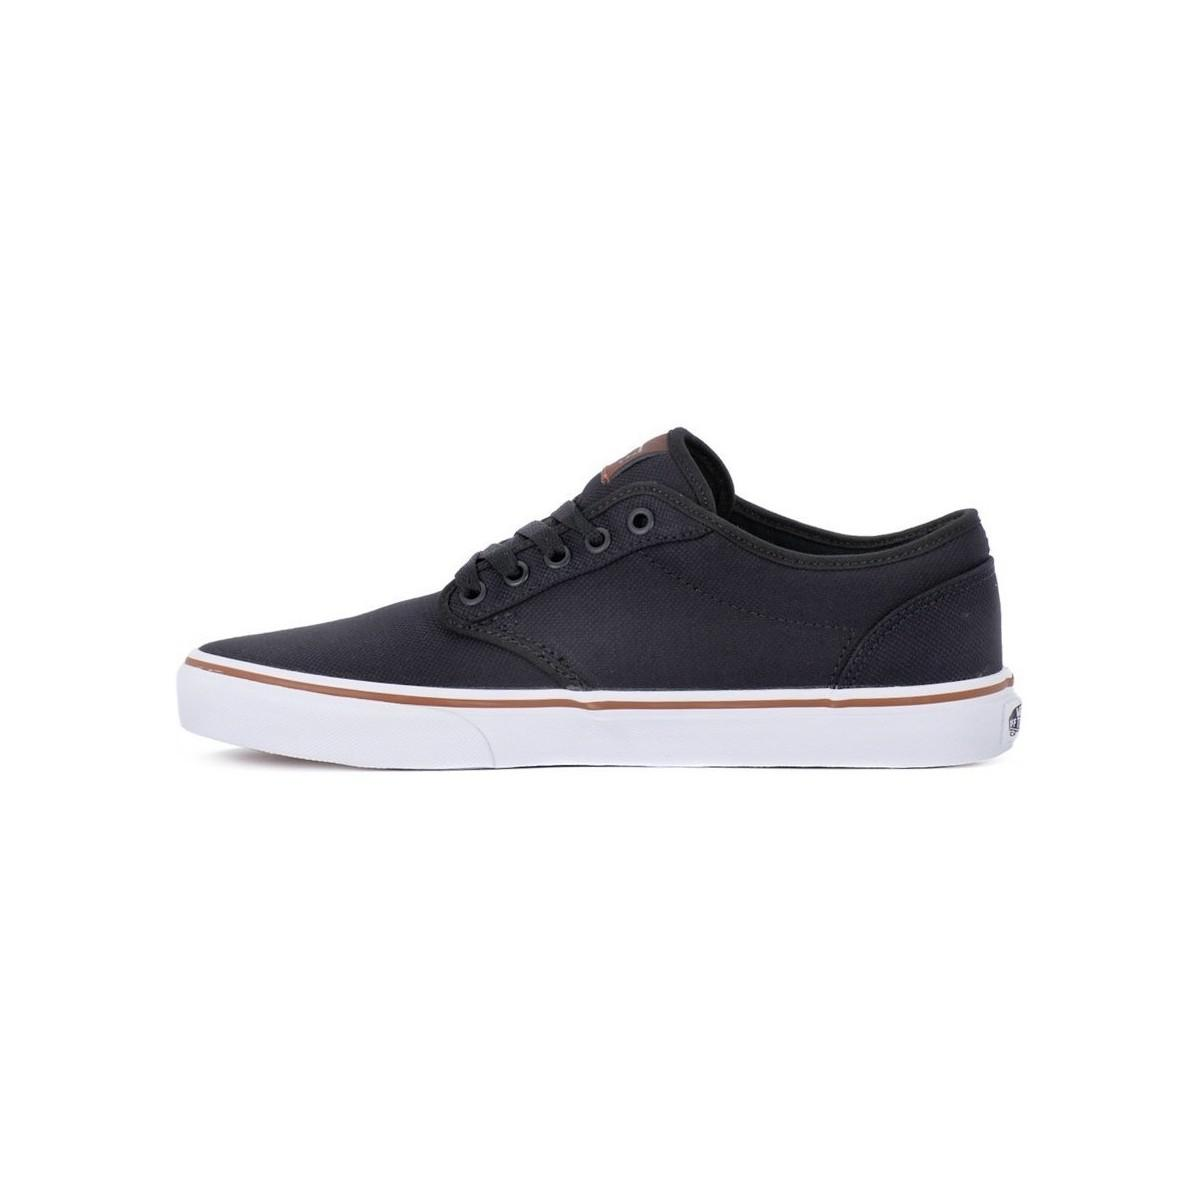 27cd5d9f6b Vans Atwood S18 Cl Men s Shoes (trainers) In Black in Black for Men ...